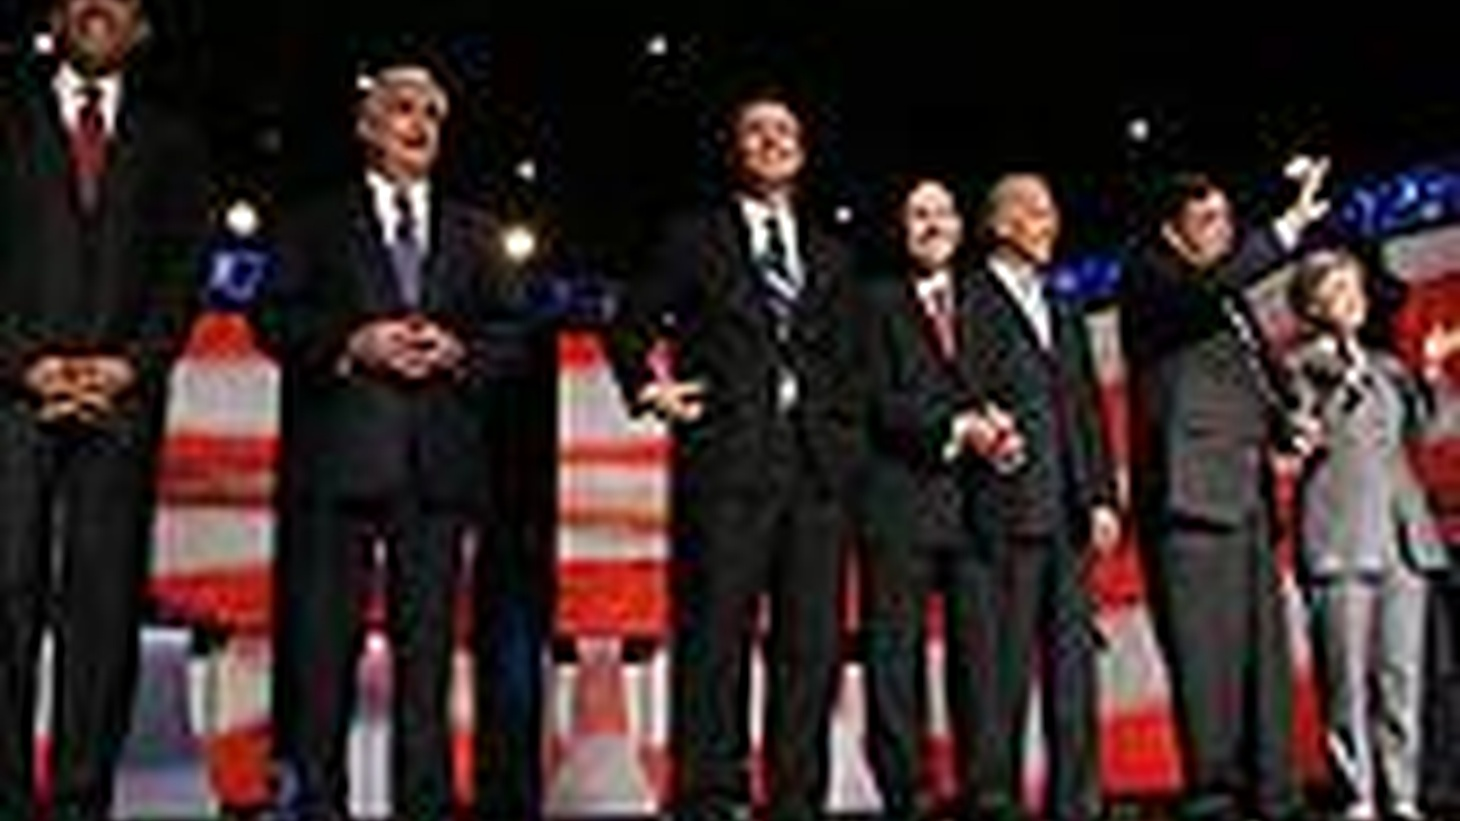 South Carolina's a red state, but the eight Democratic candidates for president got together there last night to debate on Iraq, healthcare and other issues. We get assessments from across the spectrum of party opinion. Also, Saudi Arabia arrests nearly 200 alleged Islamic militants, and CIA Director George Tenet's new book.